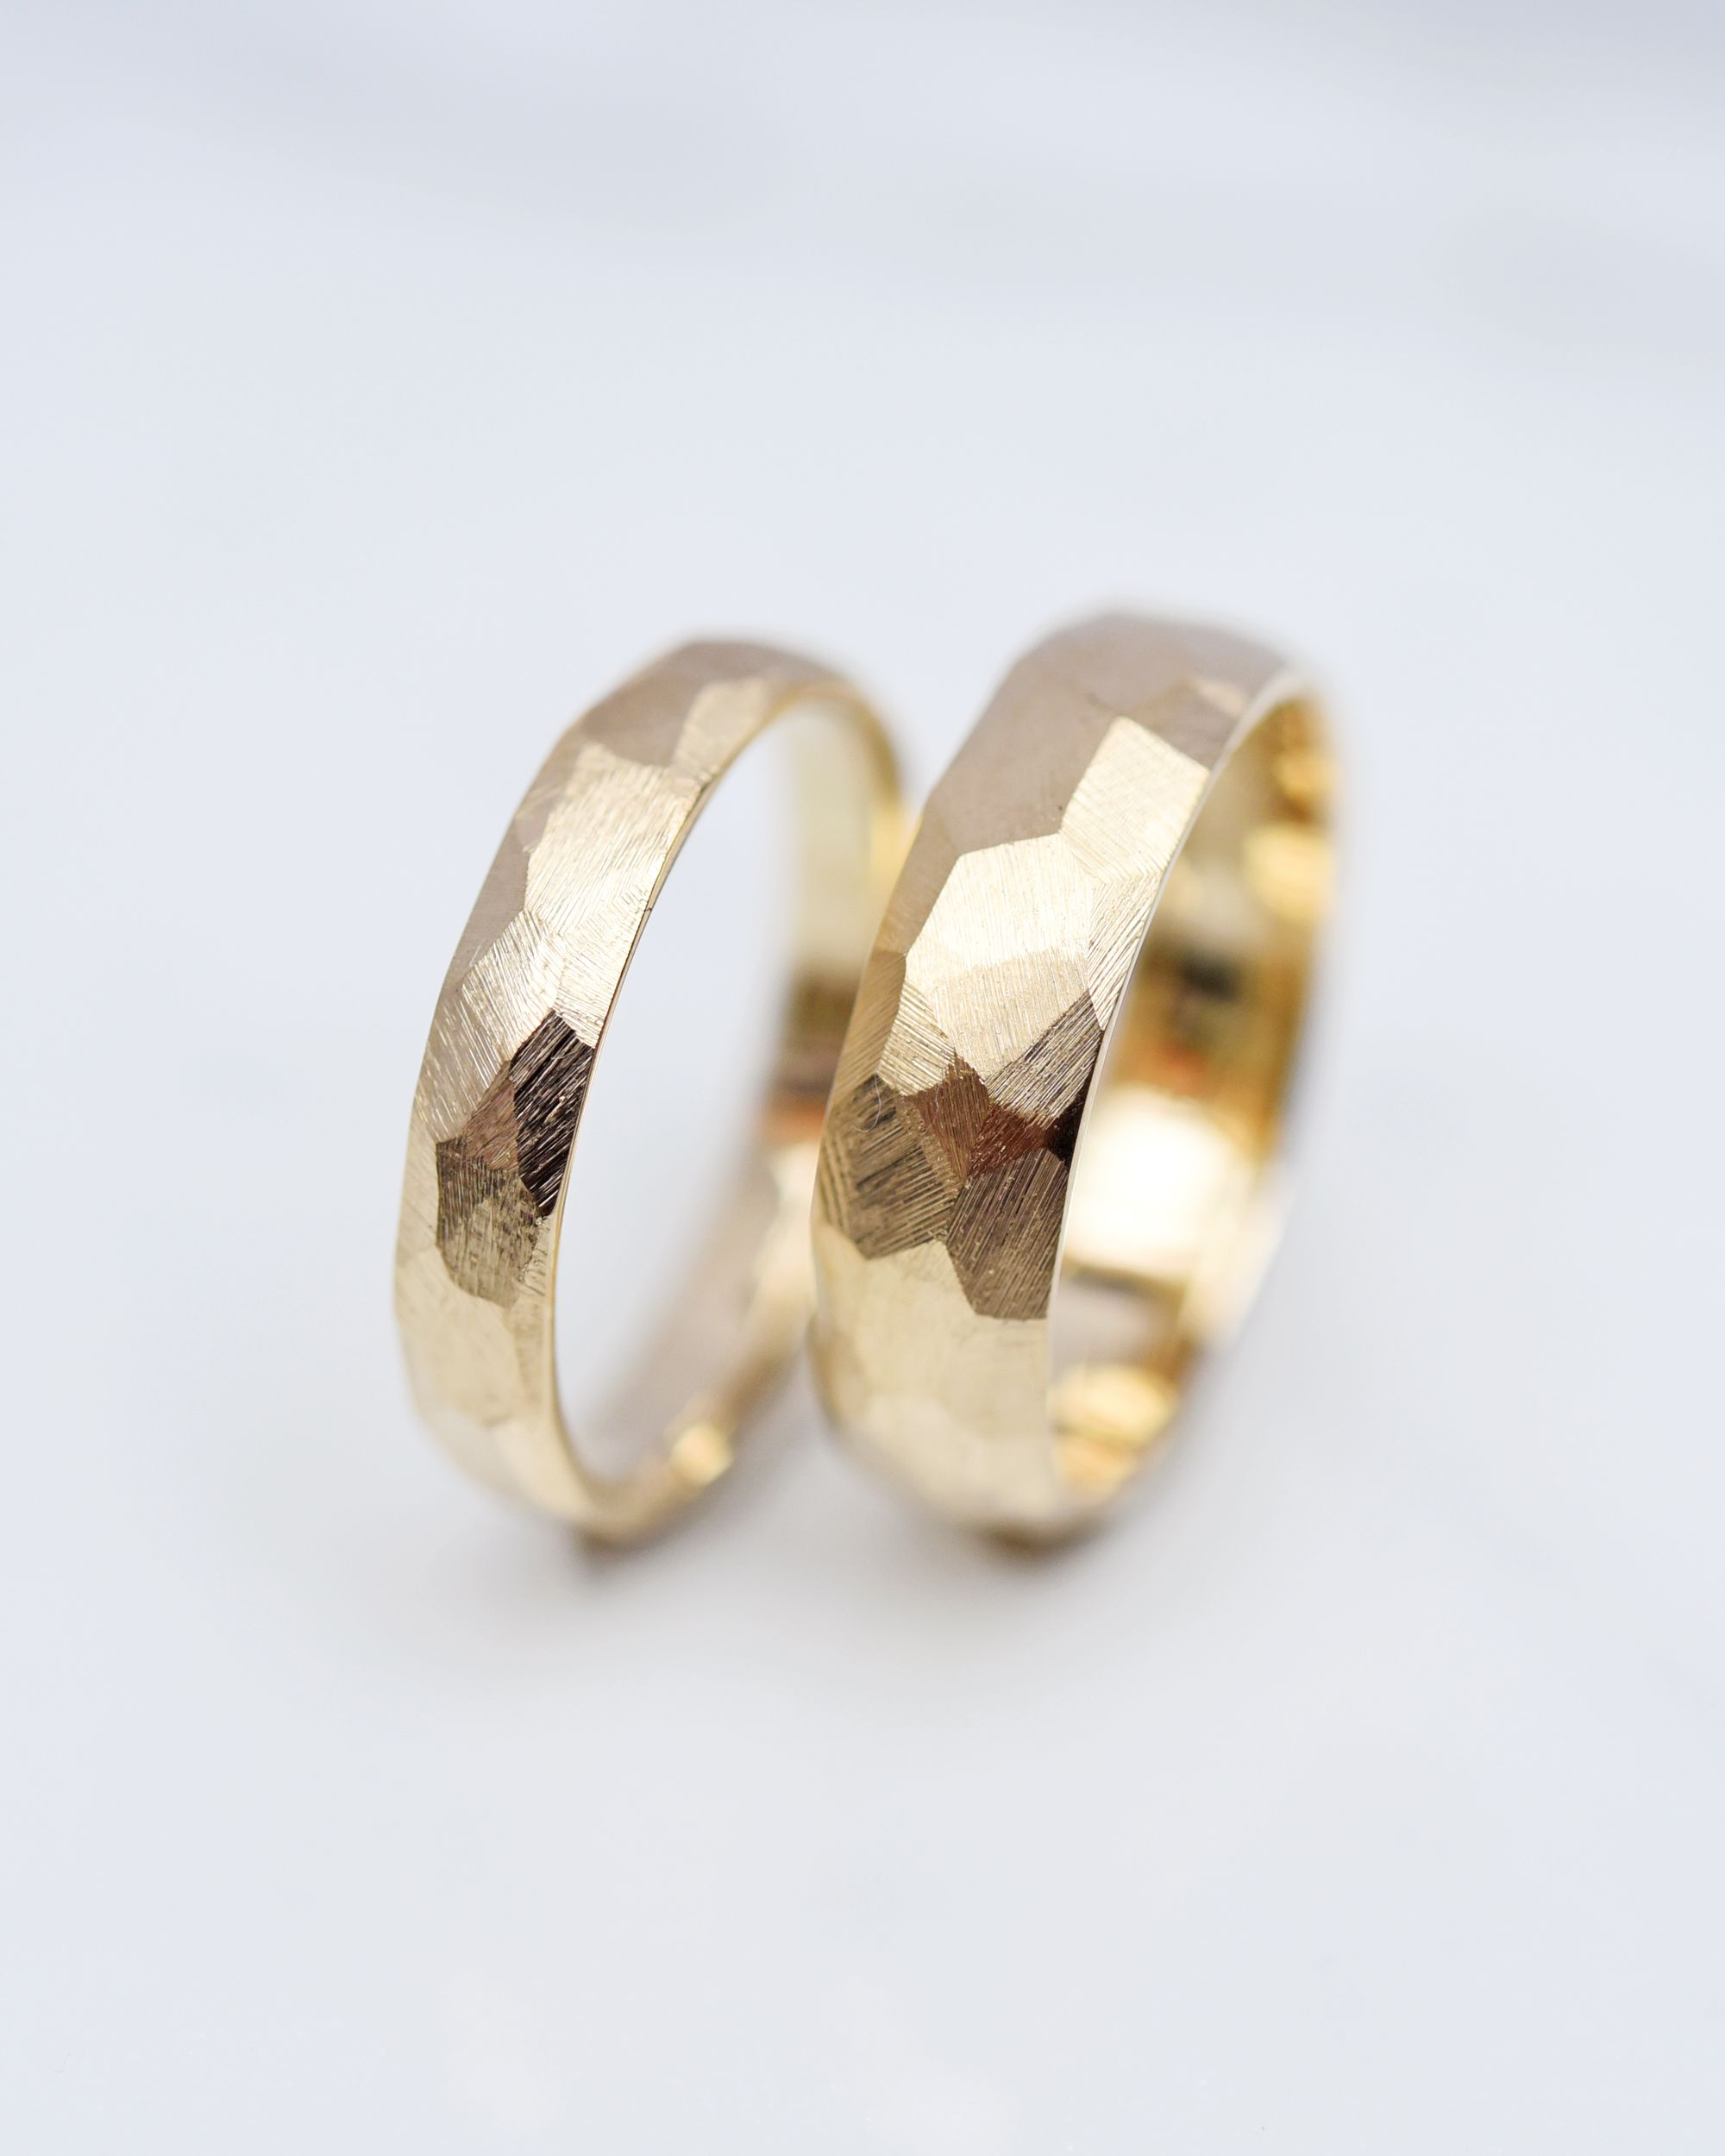 This is an image of Textured Wedding Band ideas in 30 Textured wedding band